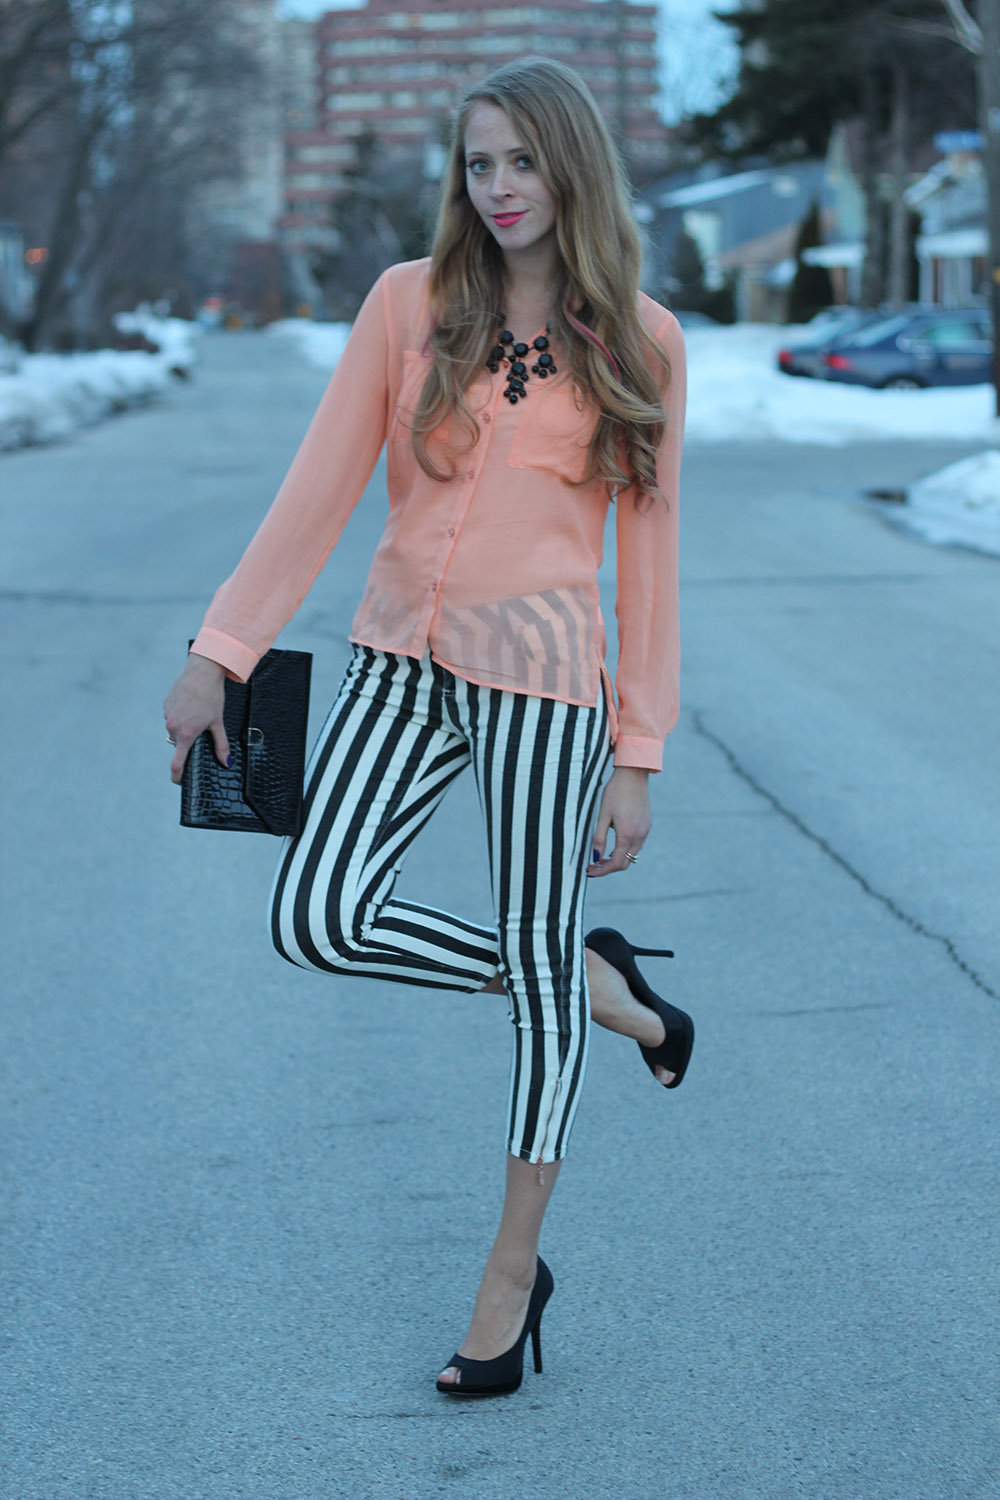 striped jeans and peach shirt